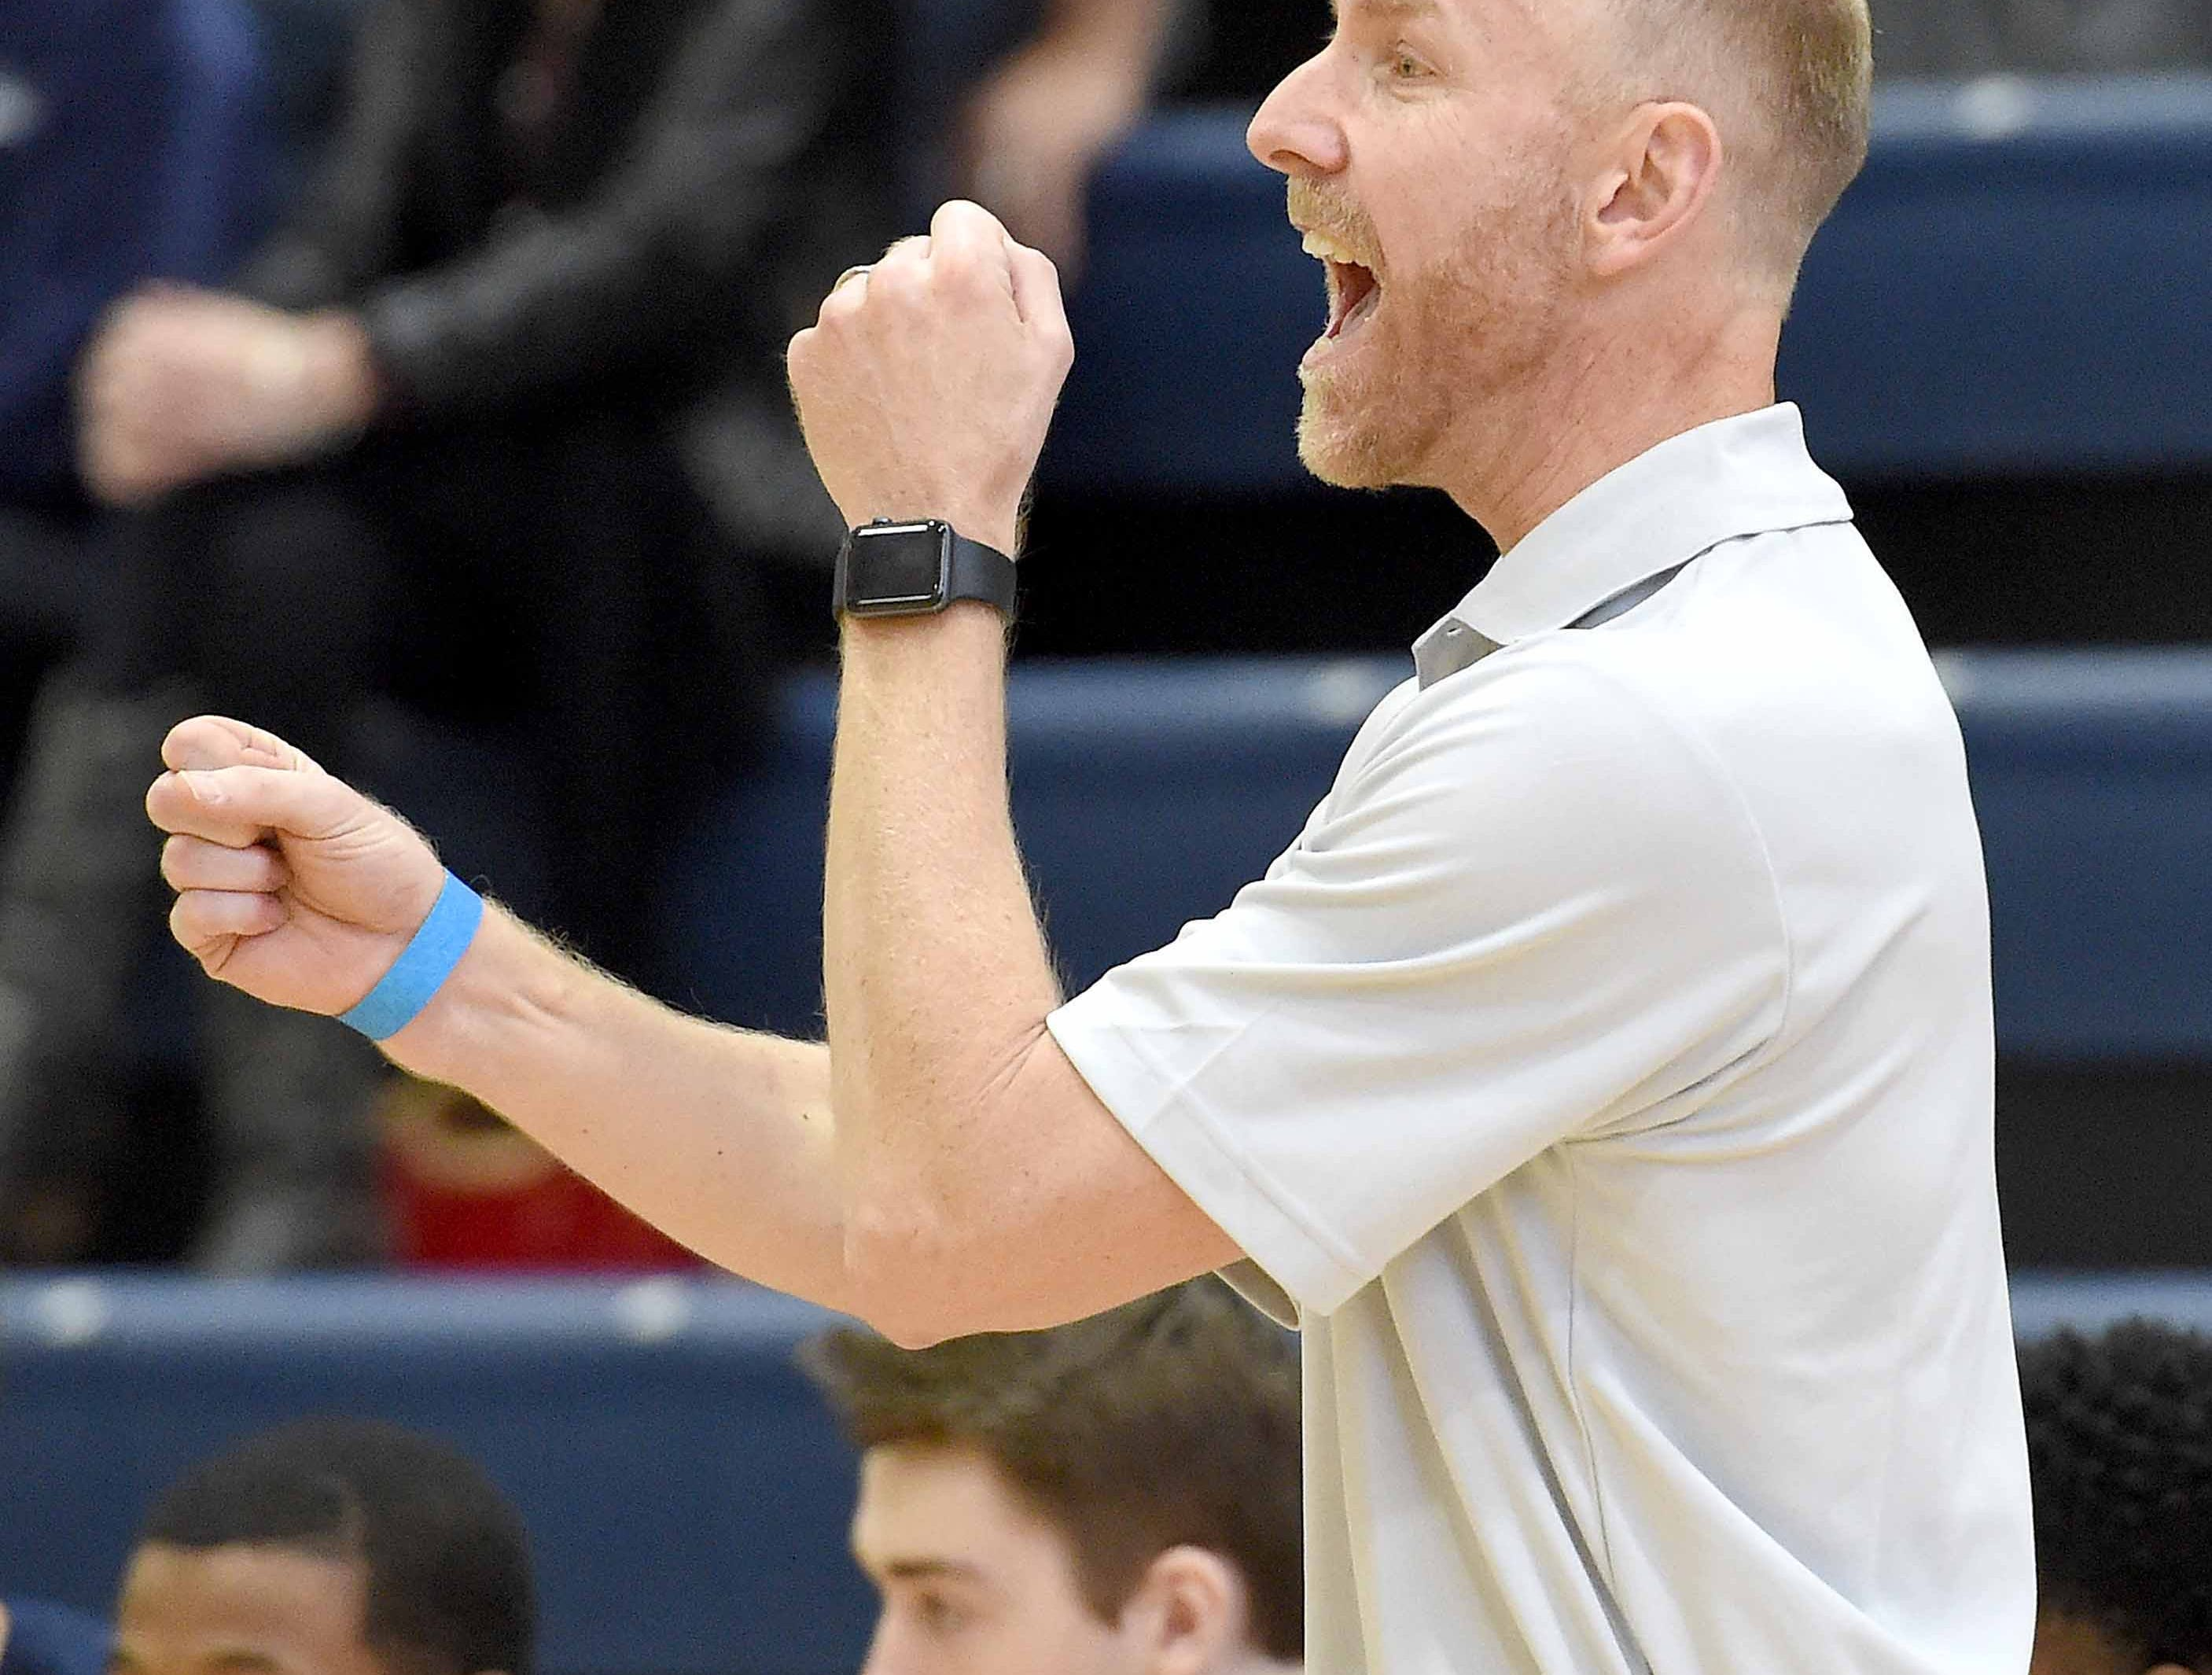 Jackson Academy head coach Josh Brooks calls out to the Raiders on Monday, January 21, 2019, at the Rumble in the South high school basketball tournament at St. Andrew's Episcopal School in Ridgeland, Miss.